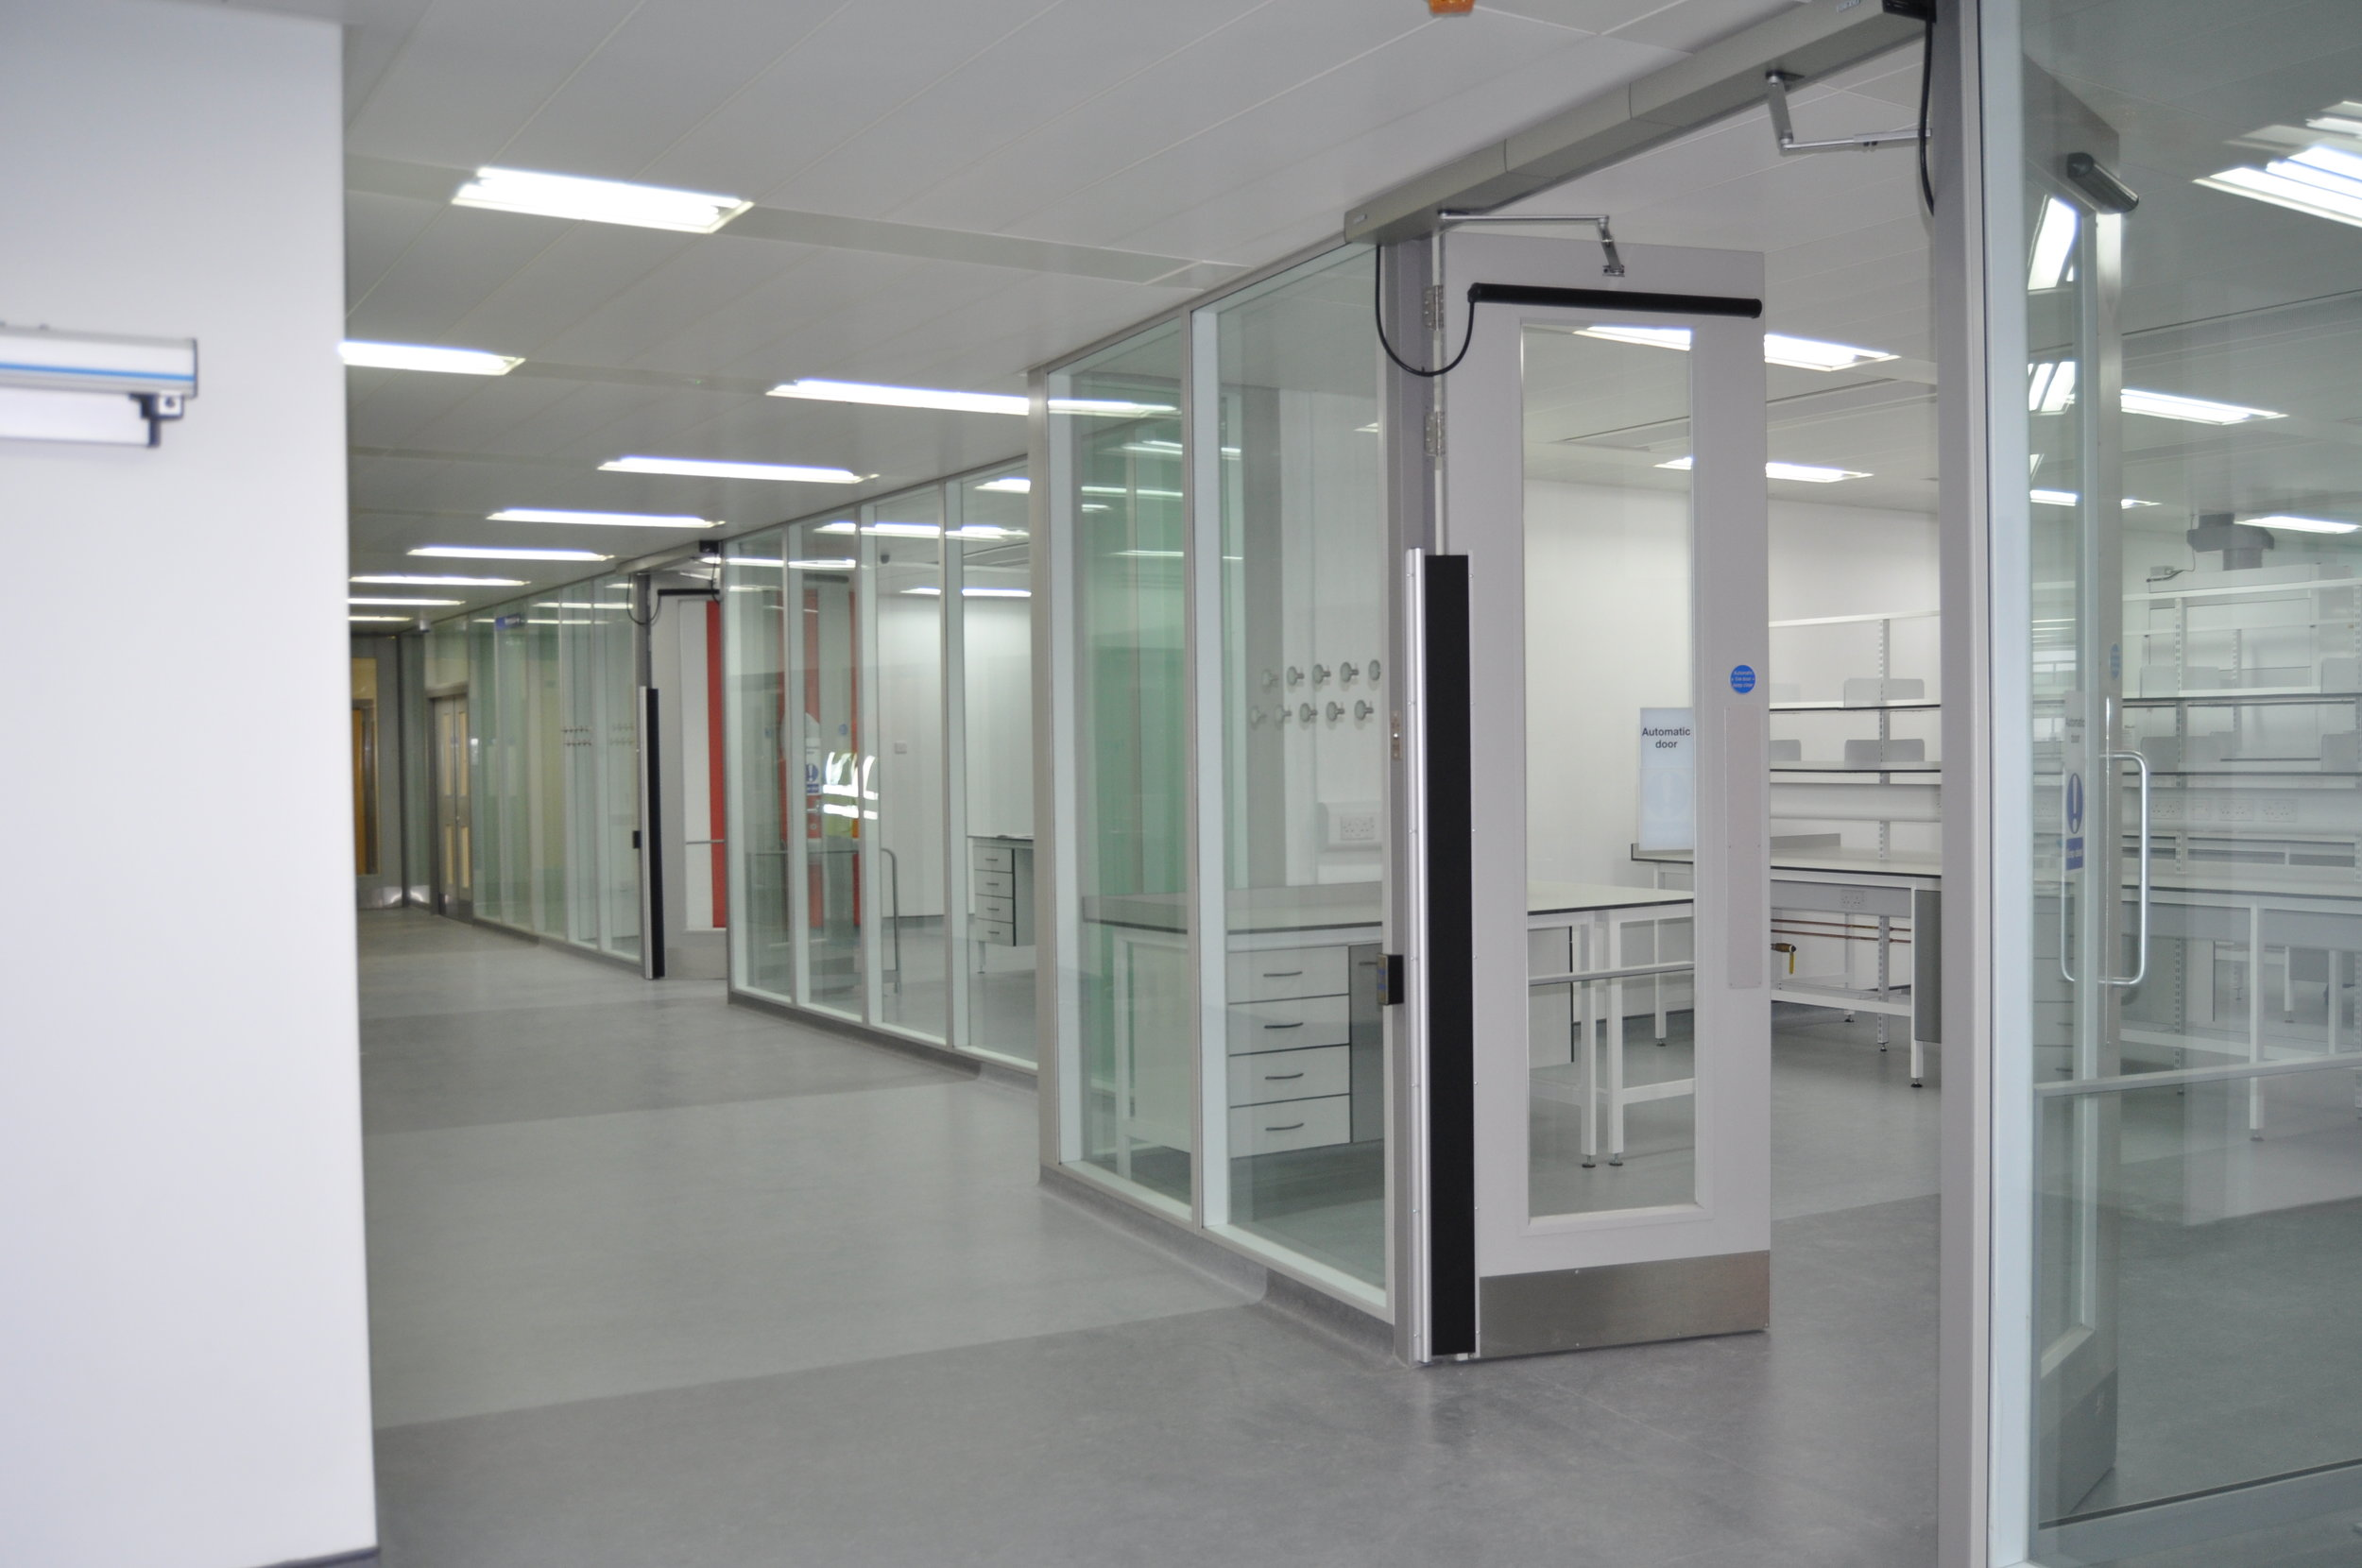 Glasgow Royal Infirmary - Glazed Partitions and Steel Doors